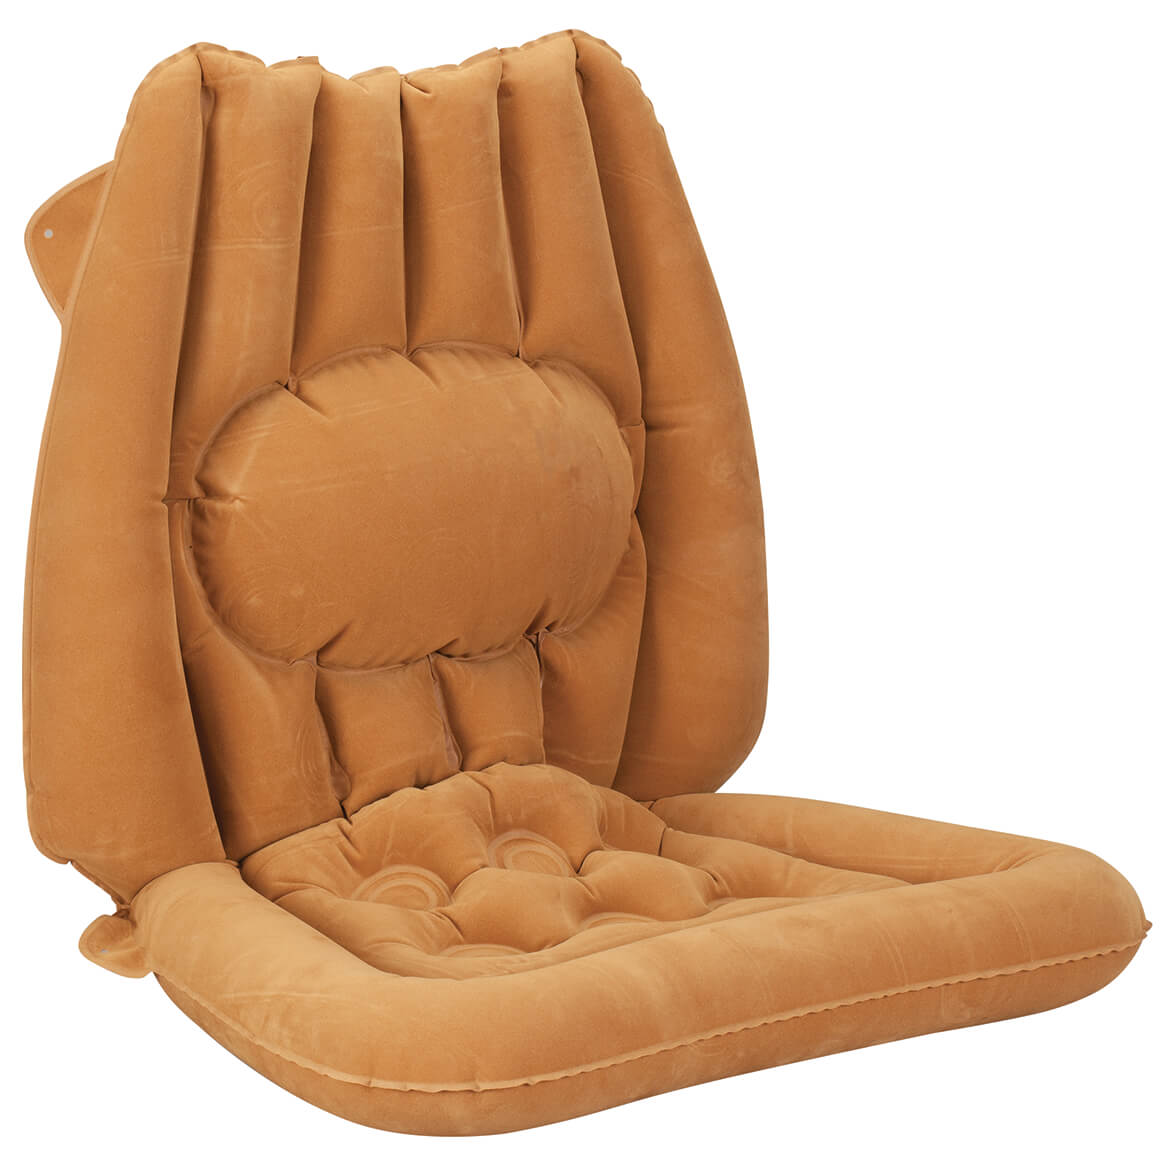 Inflatable Comfort Chair Cushion with Lumbar Support-371133